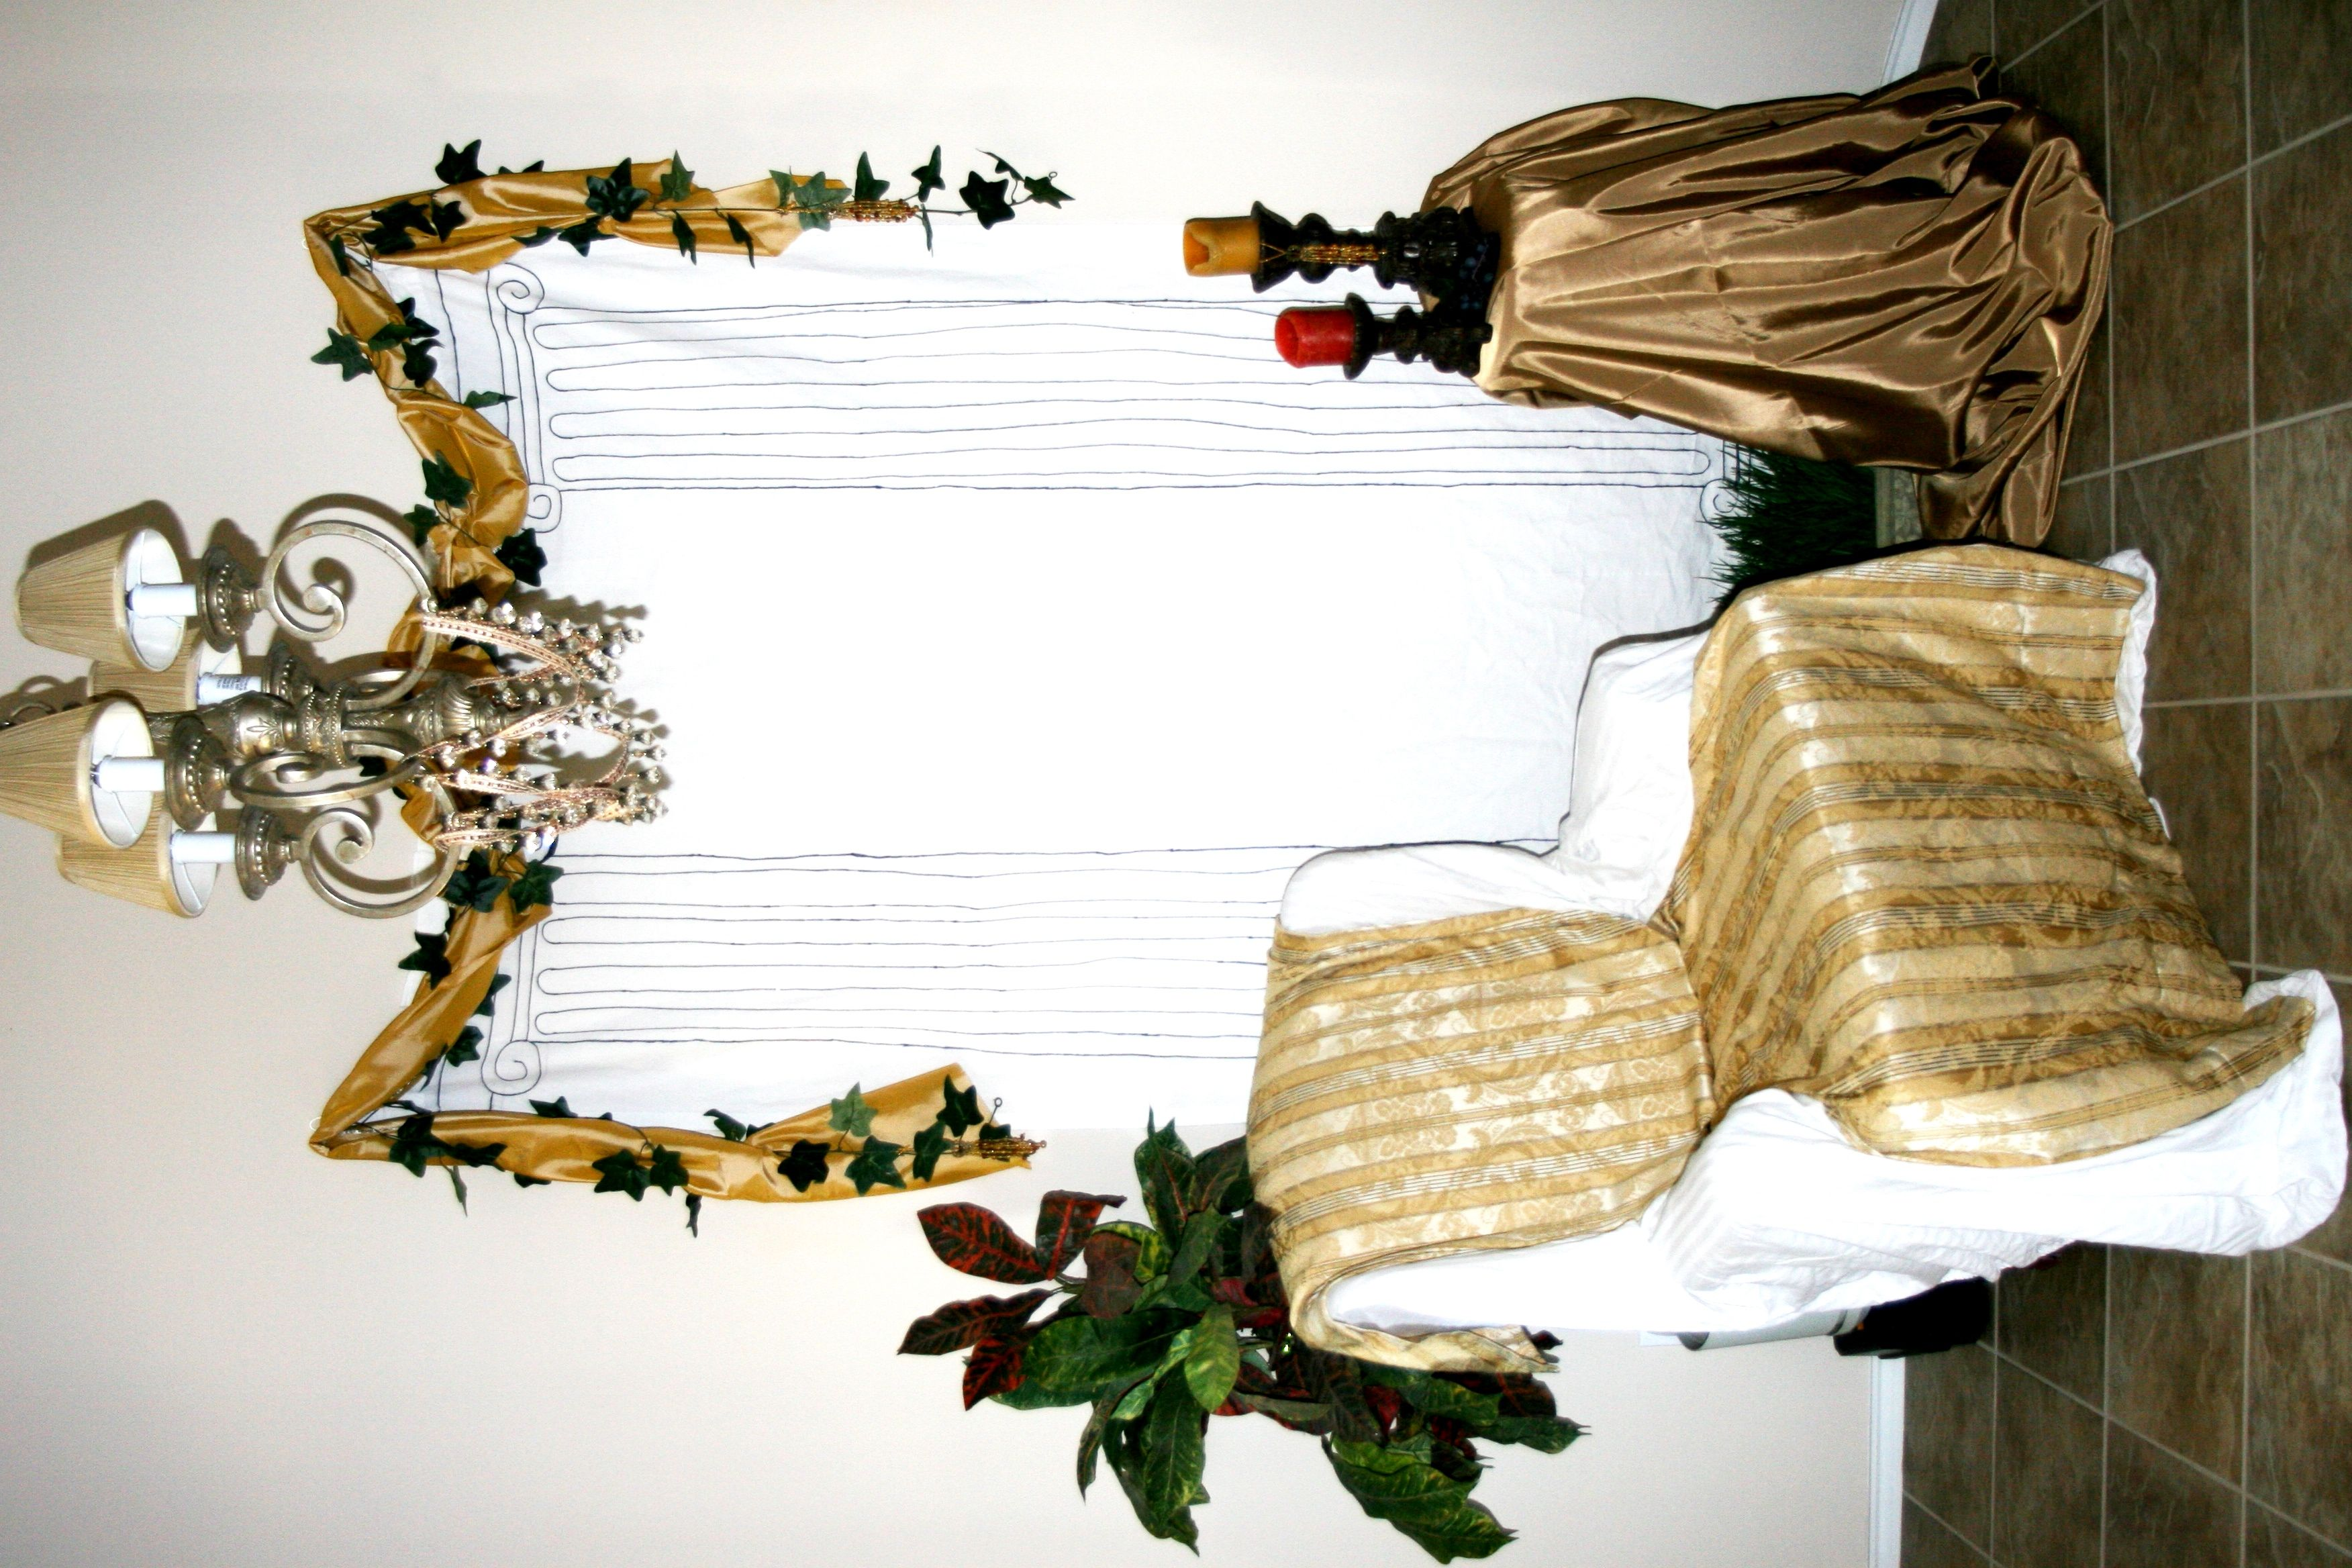 Toga Party Decorations Fun And Simple Photo Booth Idea